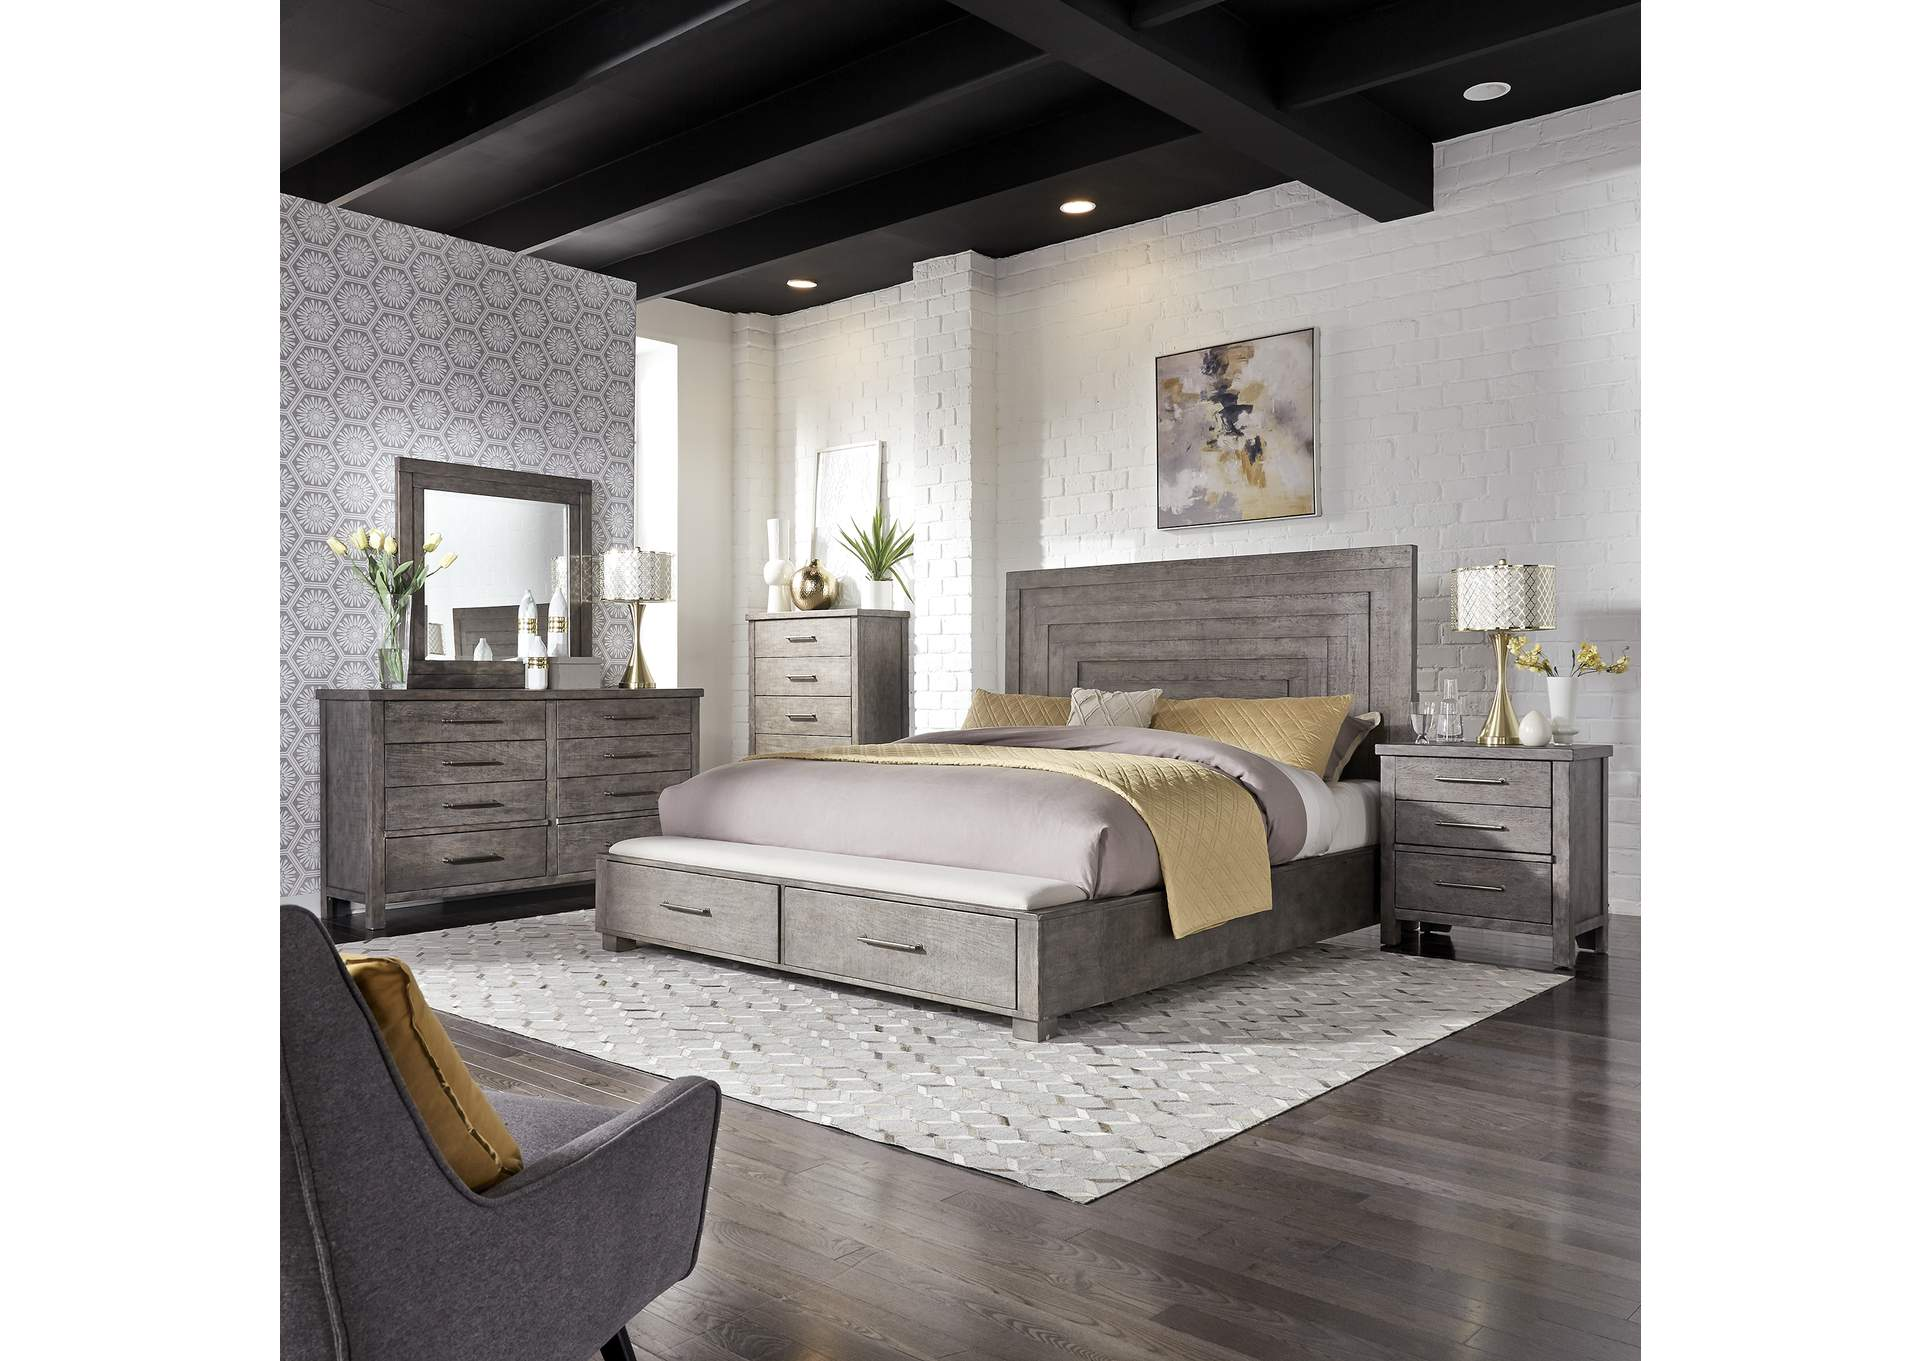 Modern Farmhouse Dusty Charcoal Queen Storage Bed Dresser Mirror Chest Night Stand Rhynes Rhodes Furniture